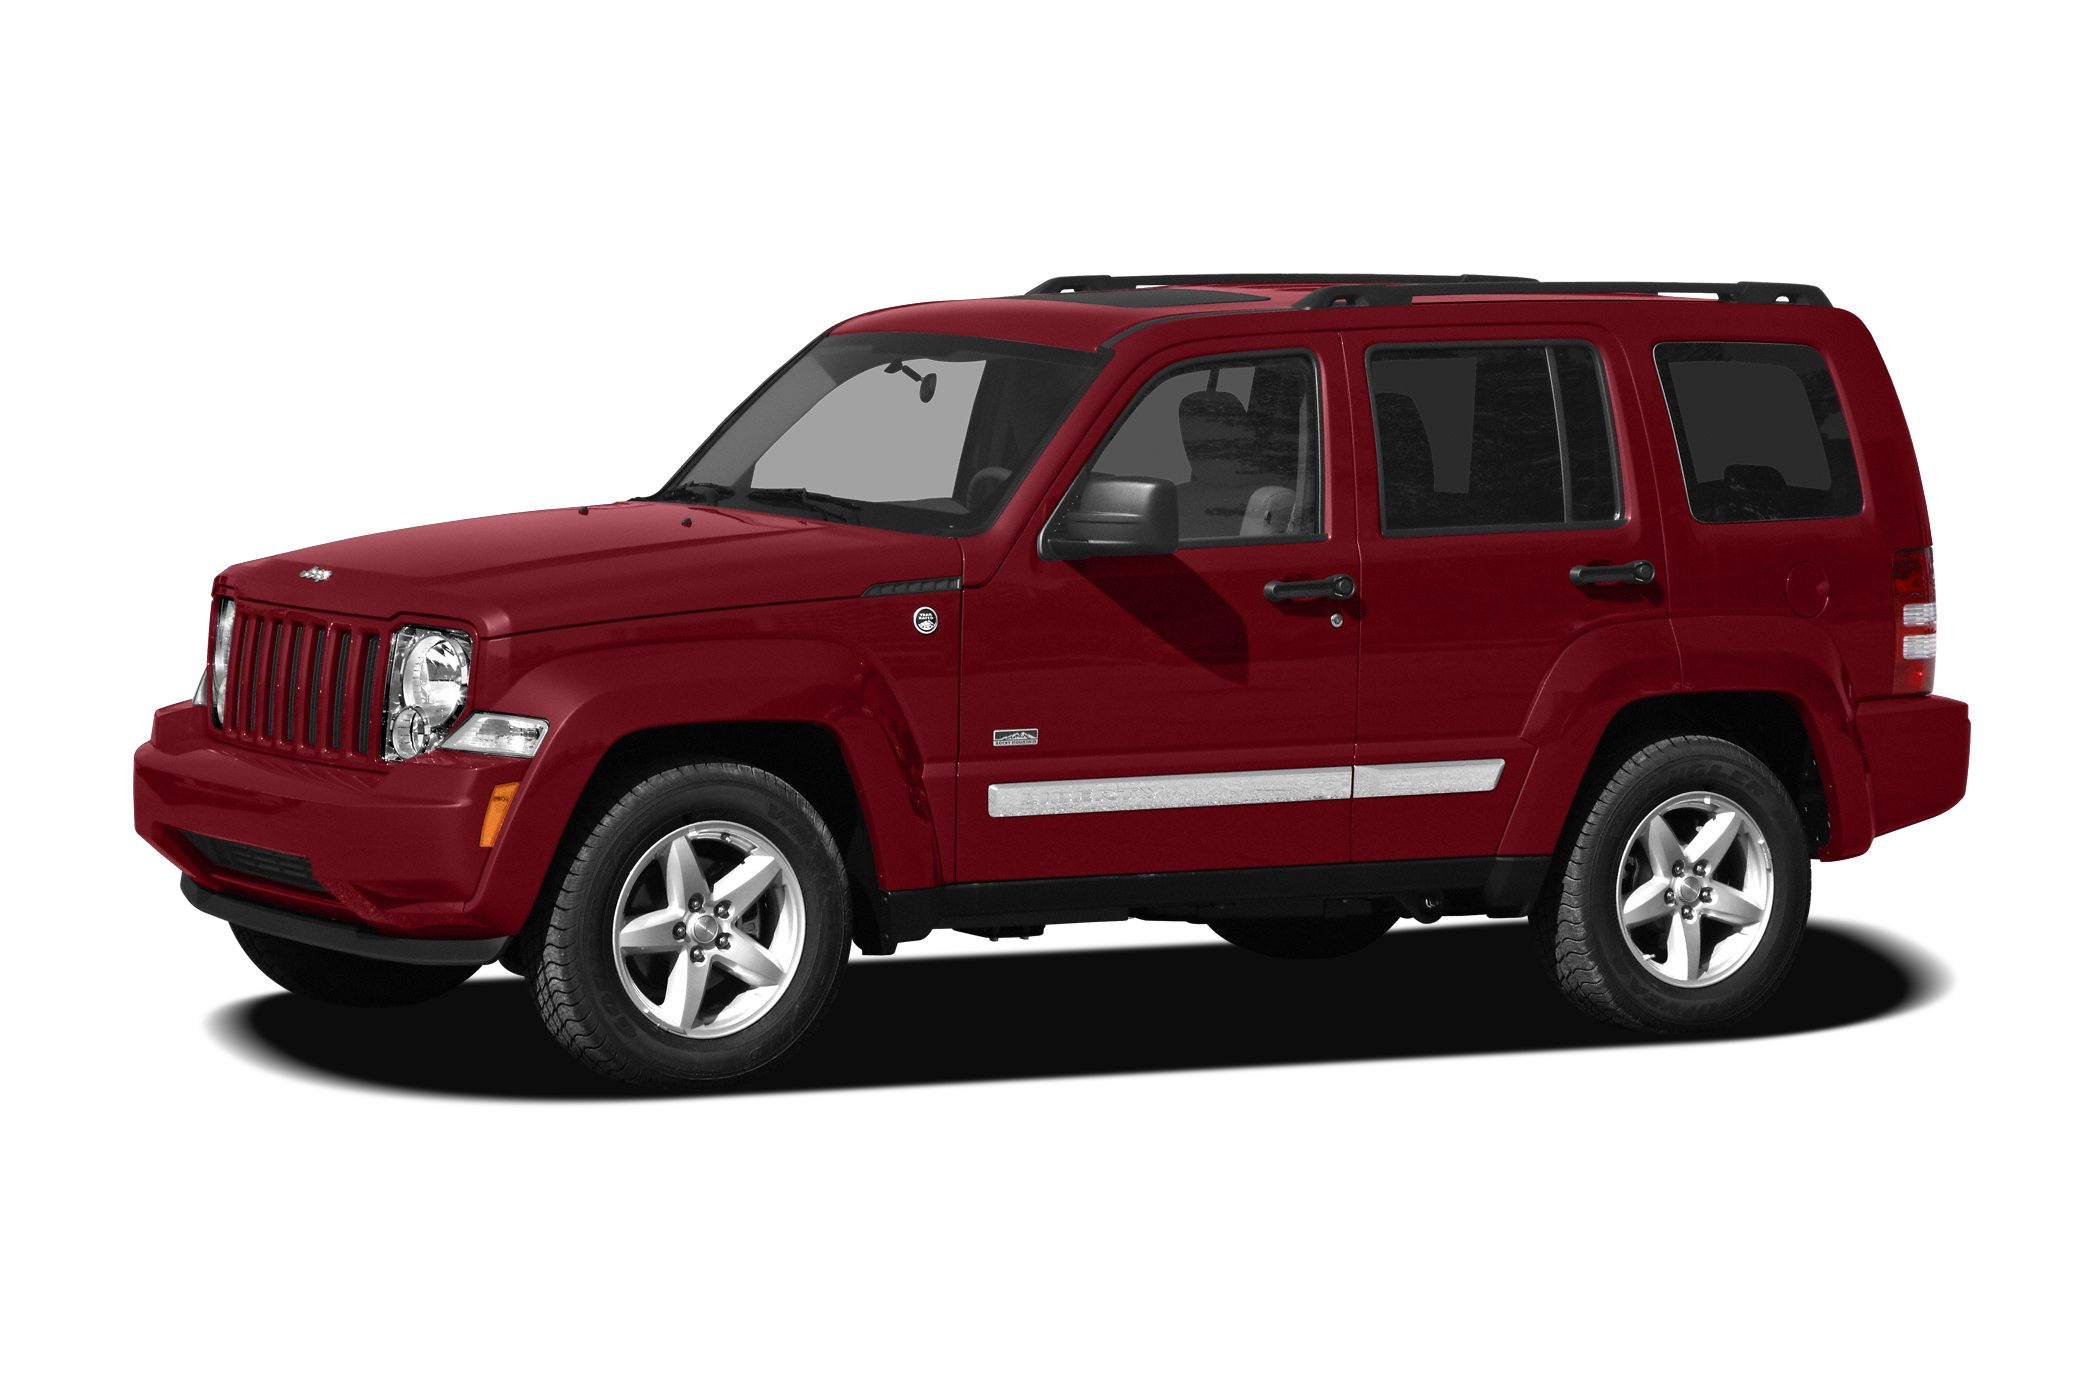 2011 Jeep Liberty Limited SUV for sale in Sarasota for $21,488 with 23,437 miles